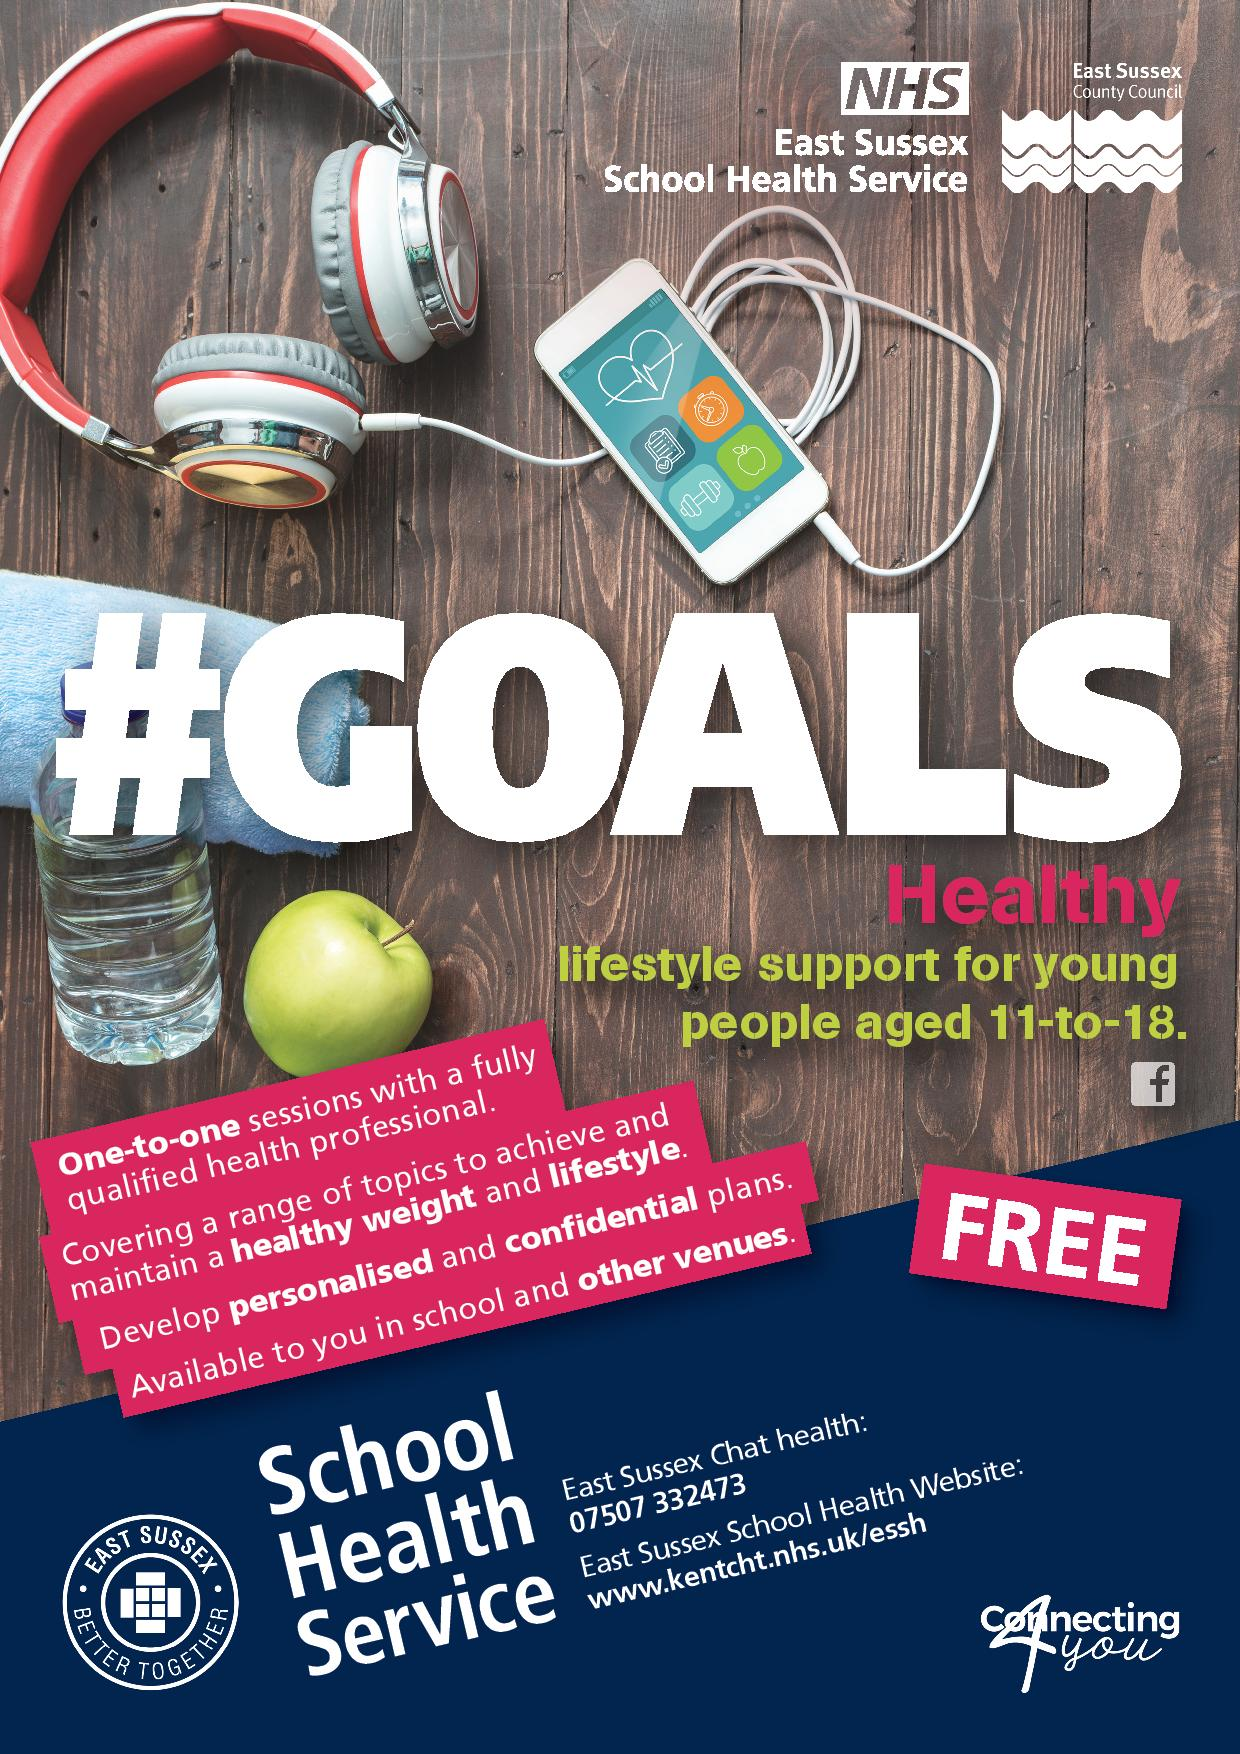 Healthy Lifestyle Support for Young People Aged 11 to 18